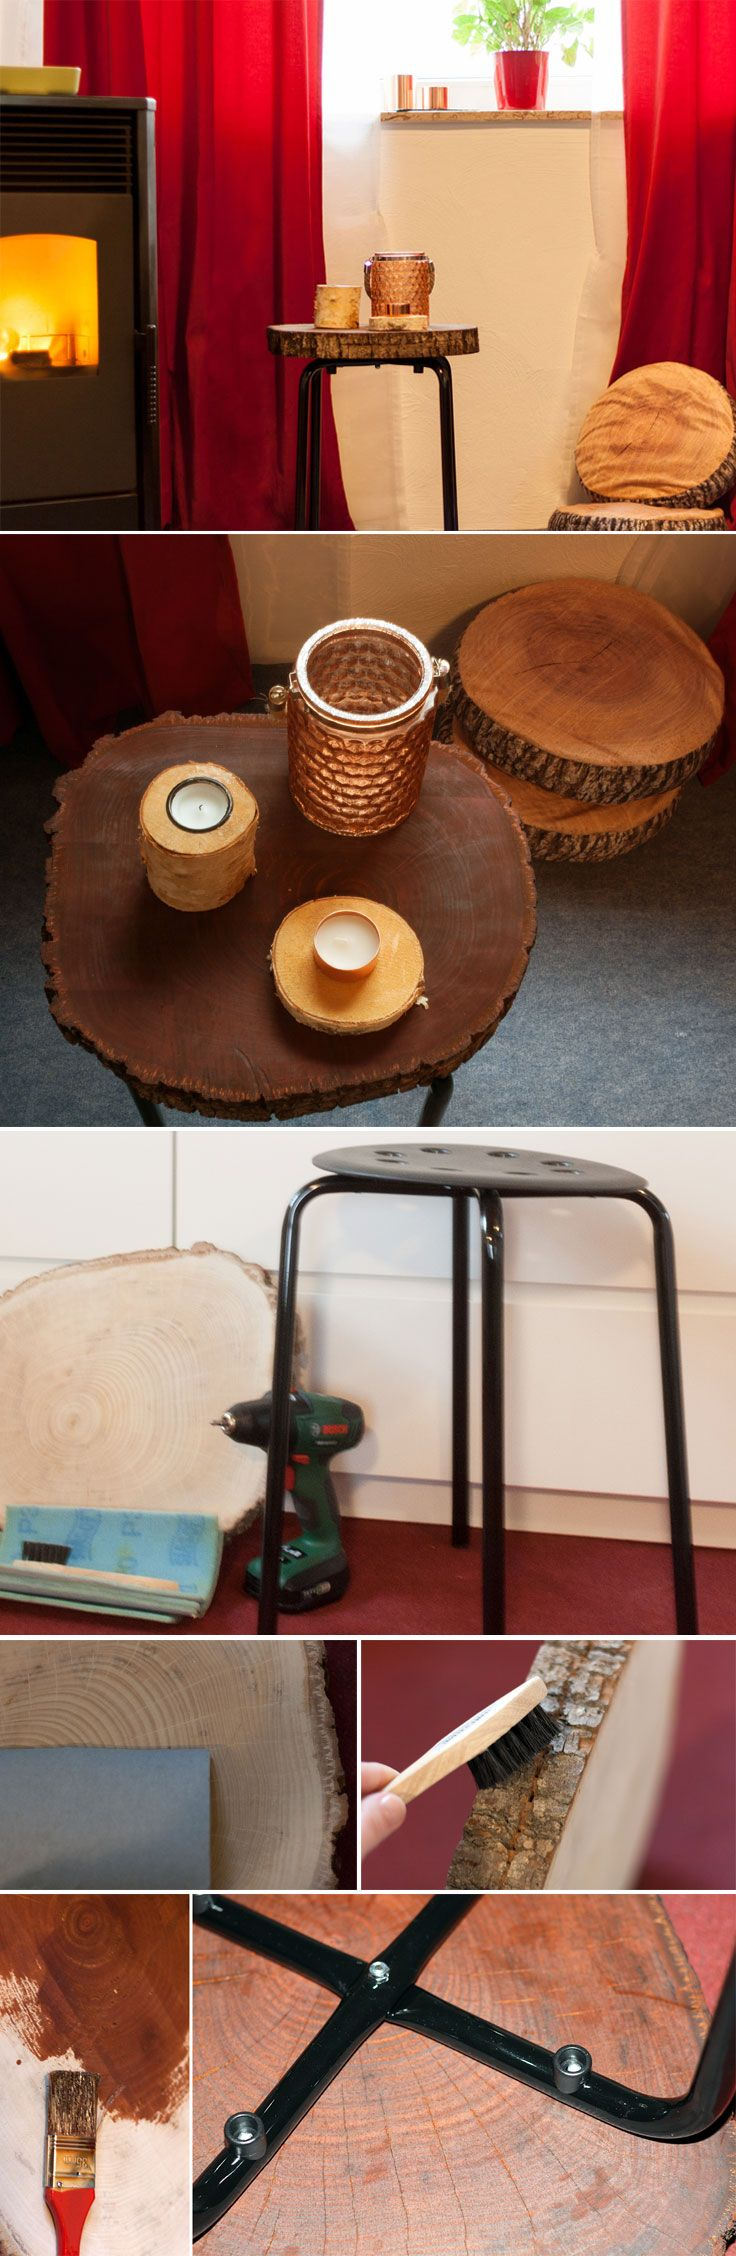 DIY wooden side table #Ikeahack  Side table with a wooden disc and an Ikea stool. Stump table from a Ikea stool. Ikea Hack, Wood, Wood, DIY, Tree stump The post DIY wooden side table #Ikeahack appeared first on Woman Casual.